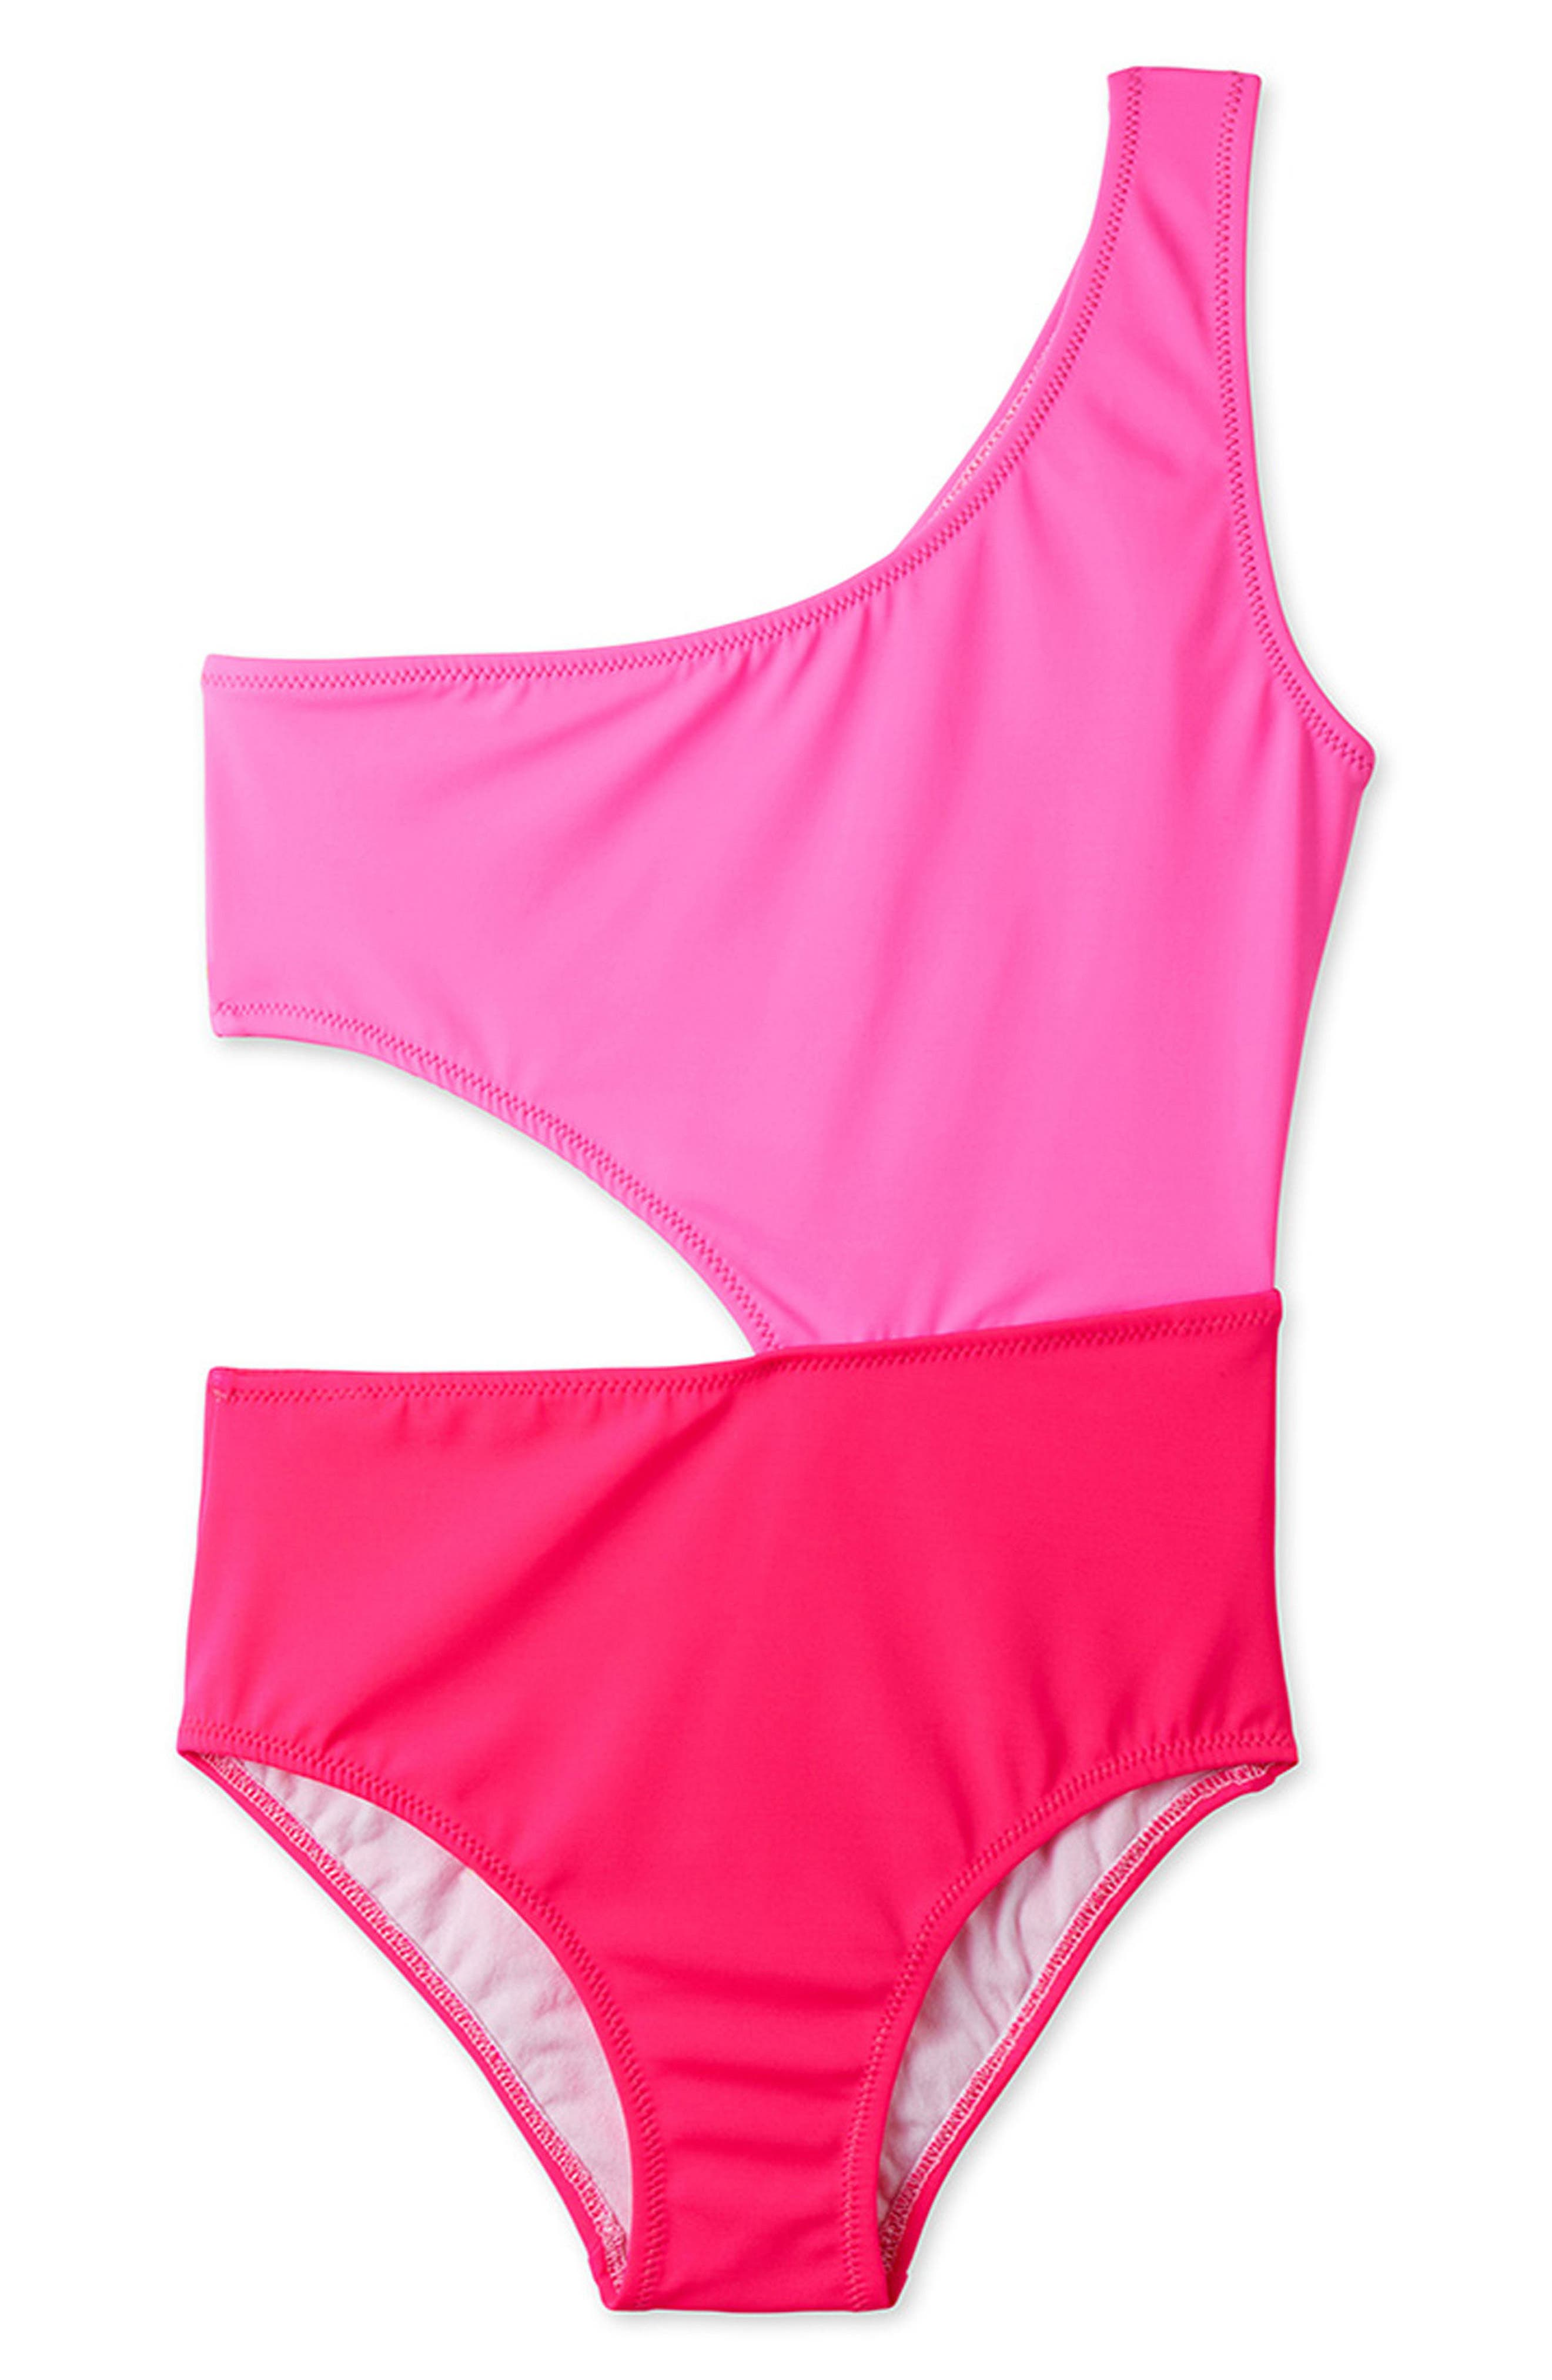 Main Image - Stella Cove Two-Tone Cutout One-Piece Swimsuit (Toddler Girls & Little Girls)